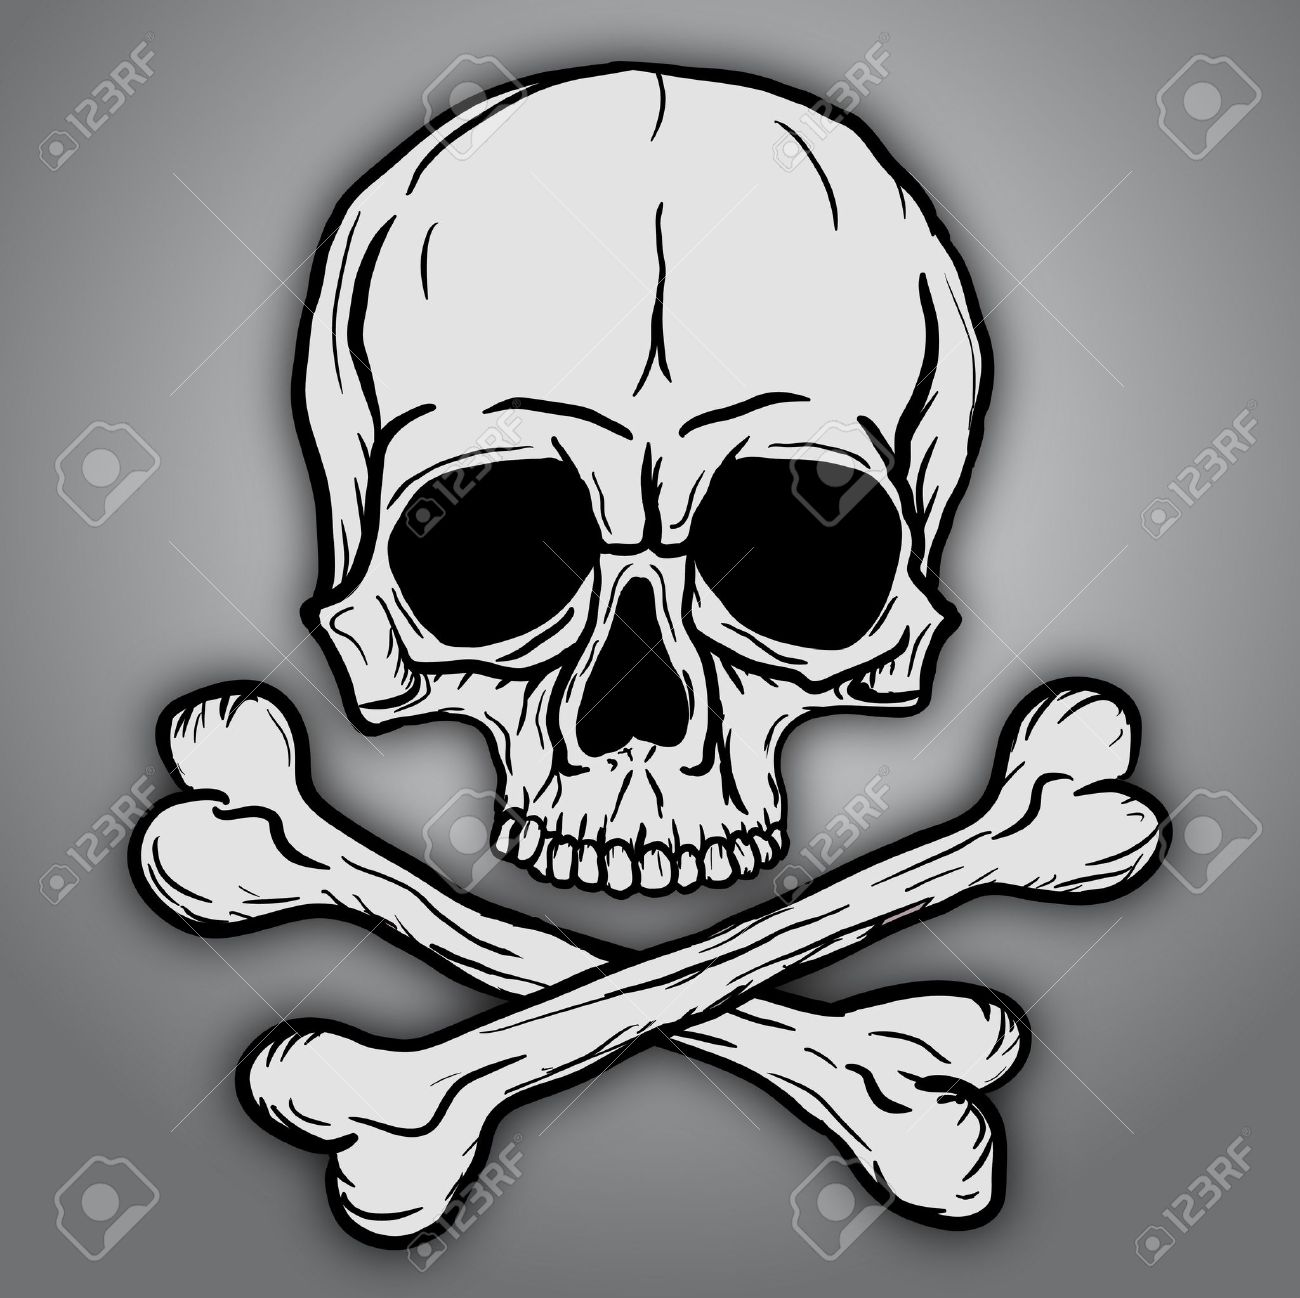 skull and crossbones over gray background royalty free cliparts